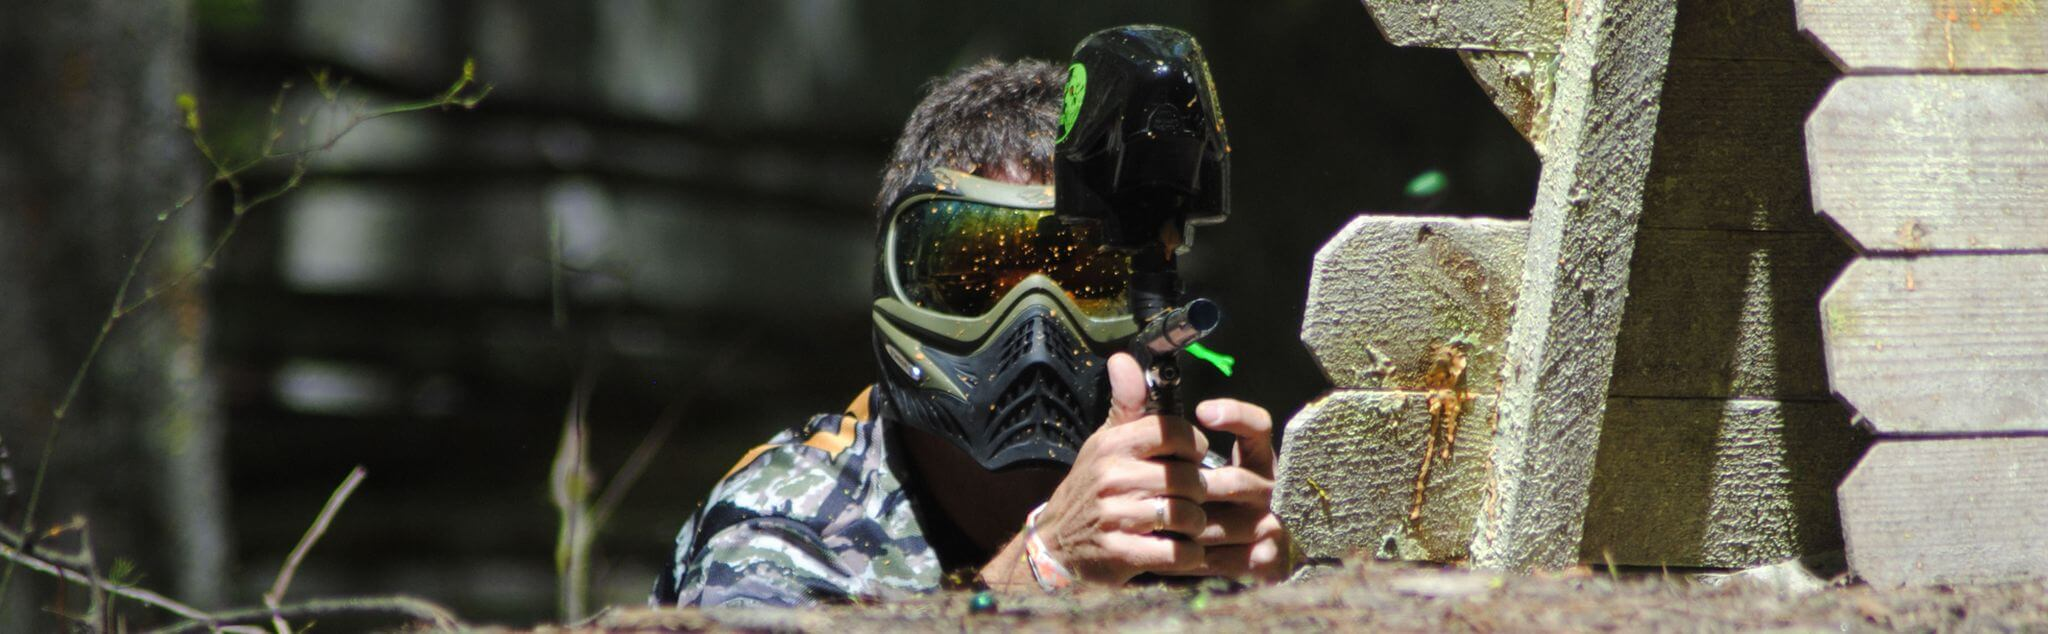 Paintball a Alessandria